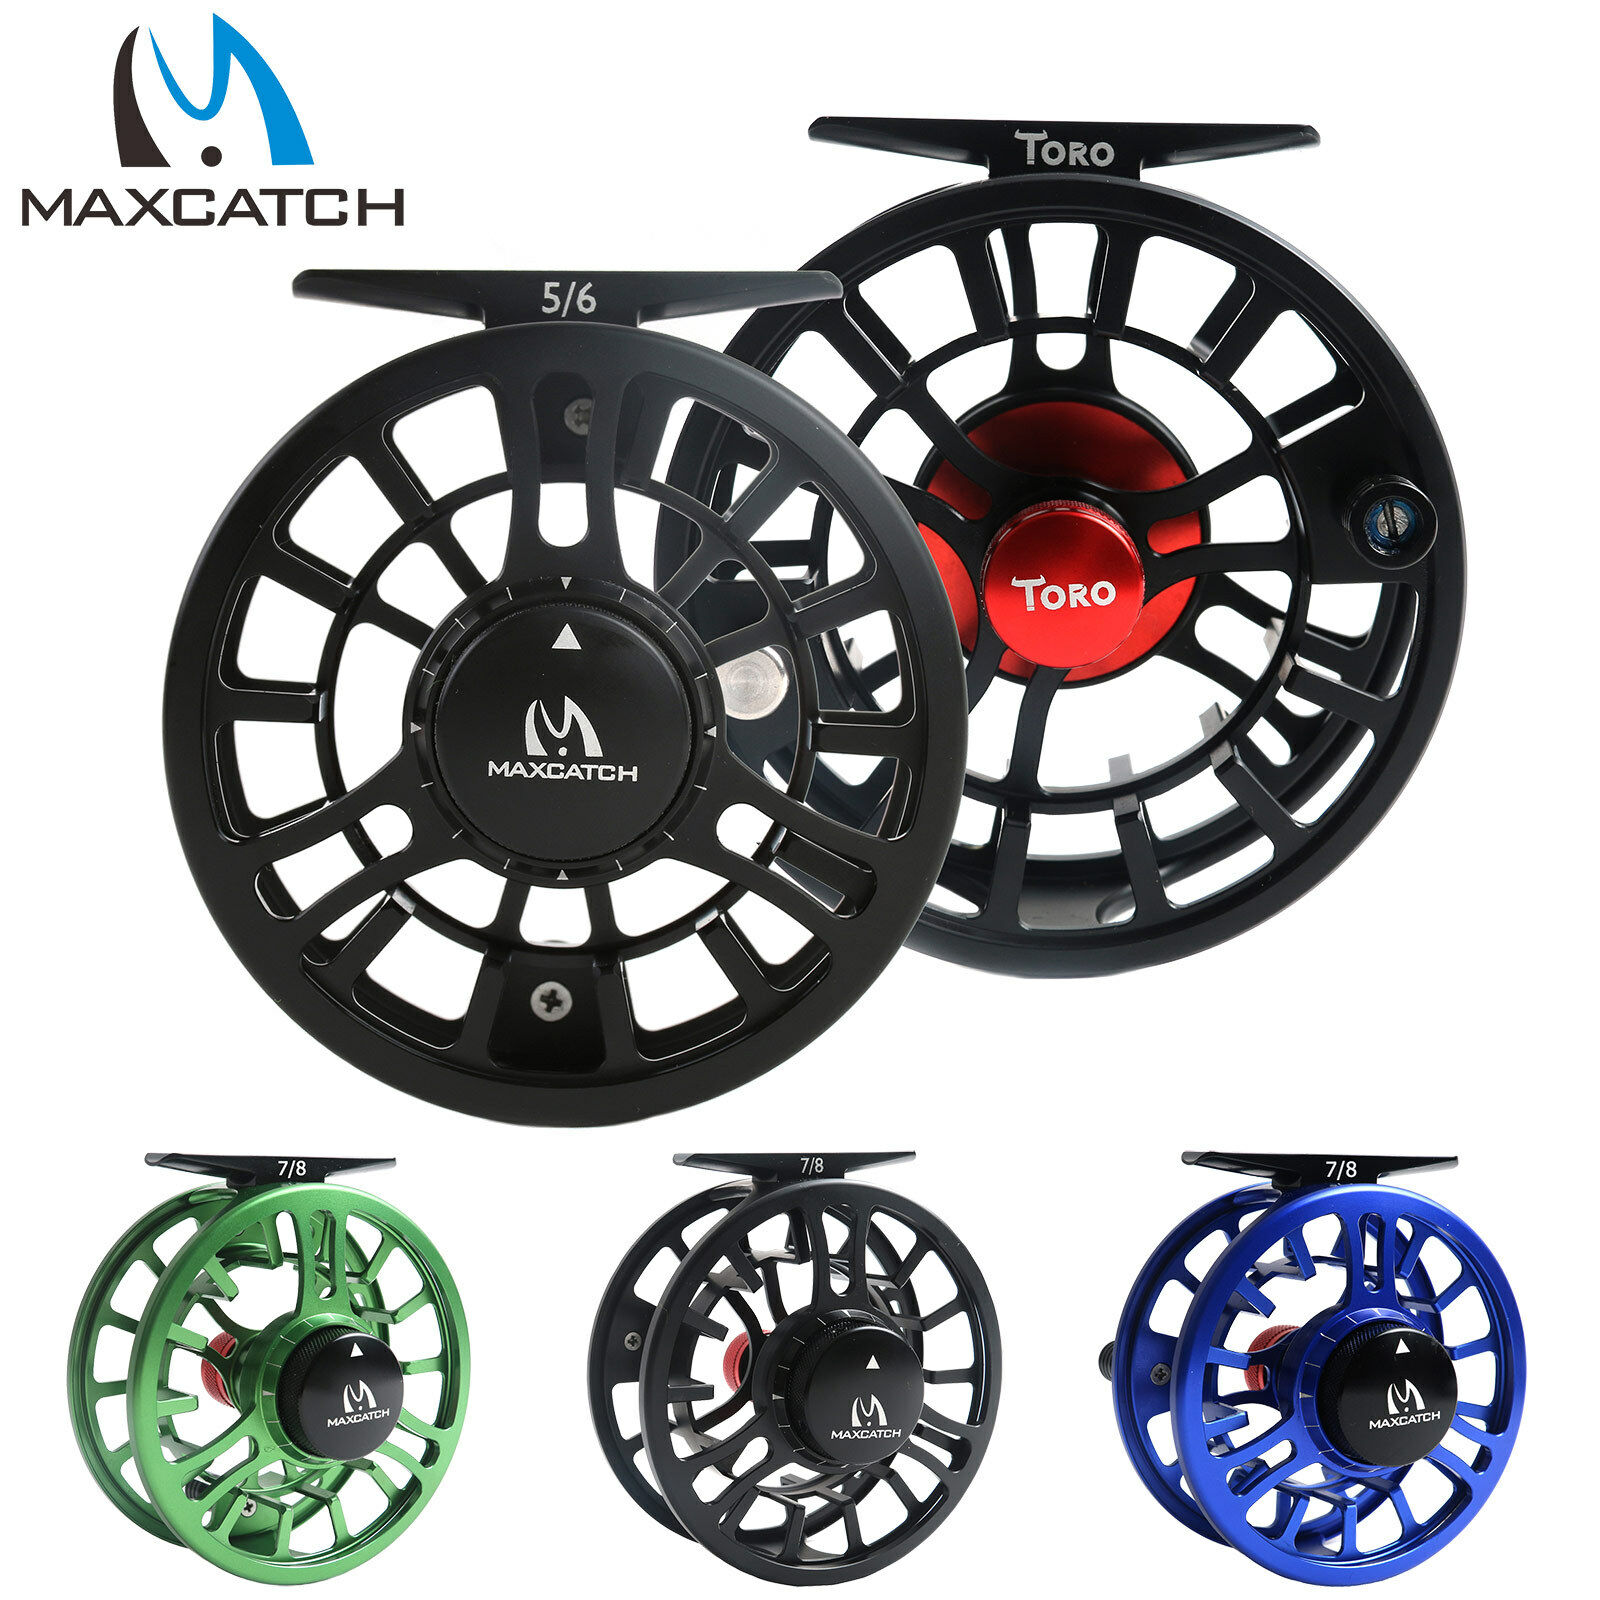 3-4 5-6 7-8WT CNC Usiné Alliage d'aluminium corps large arbor Fishing Fly Reel